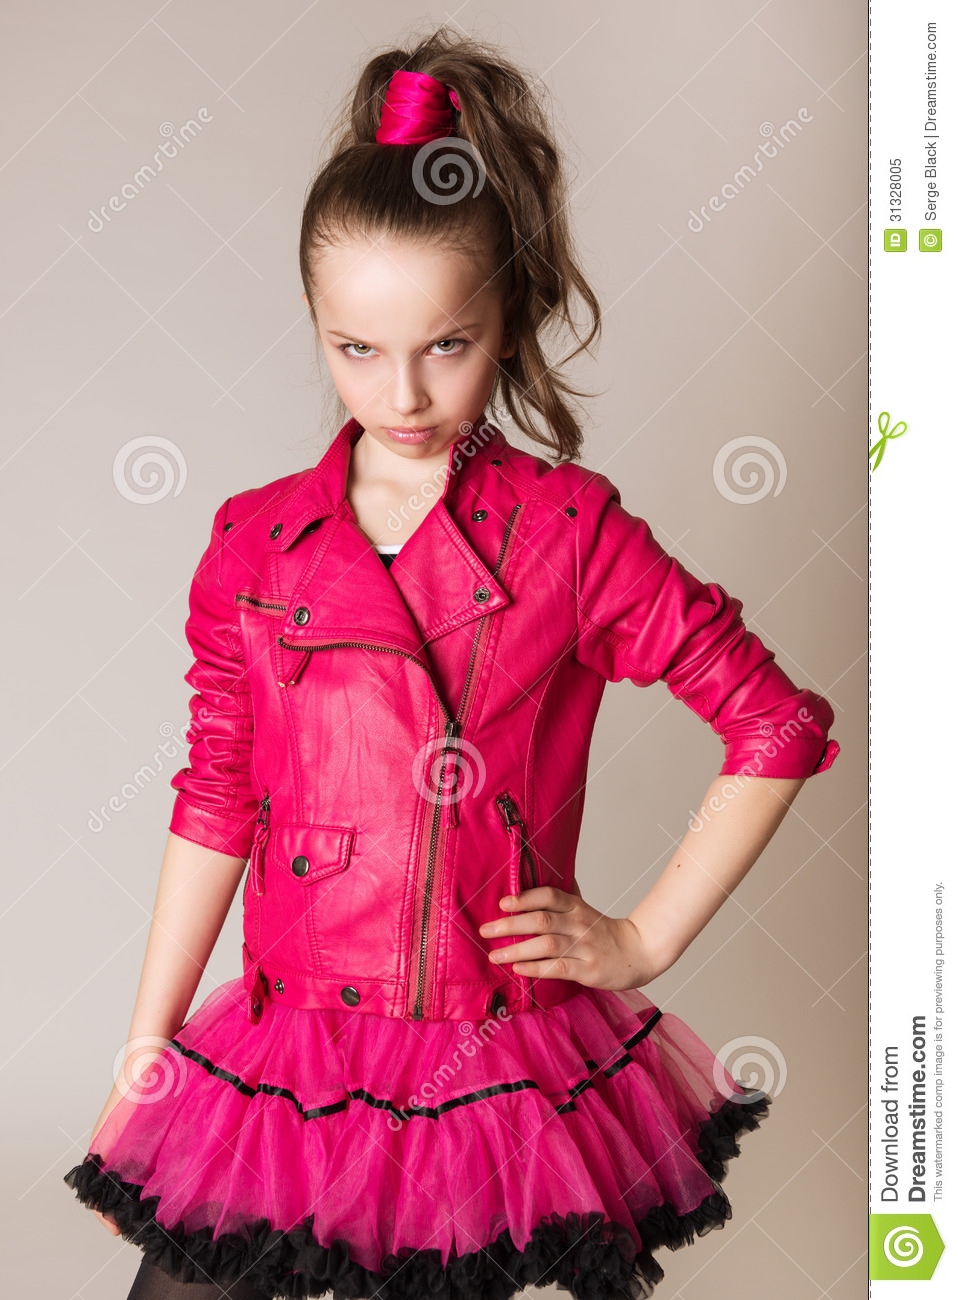 Fashion Little Girl In Glam Rock Style Royalty Free Stock